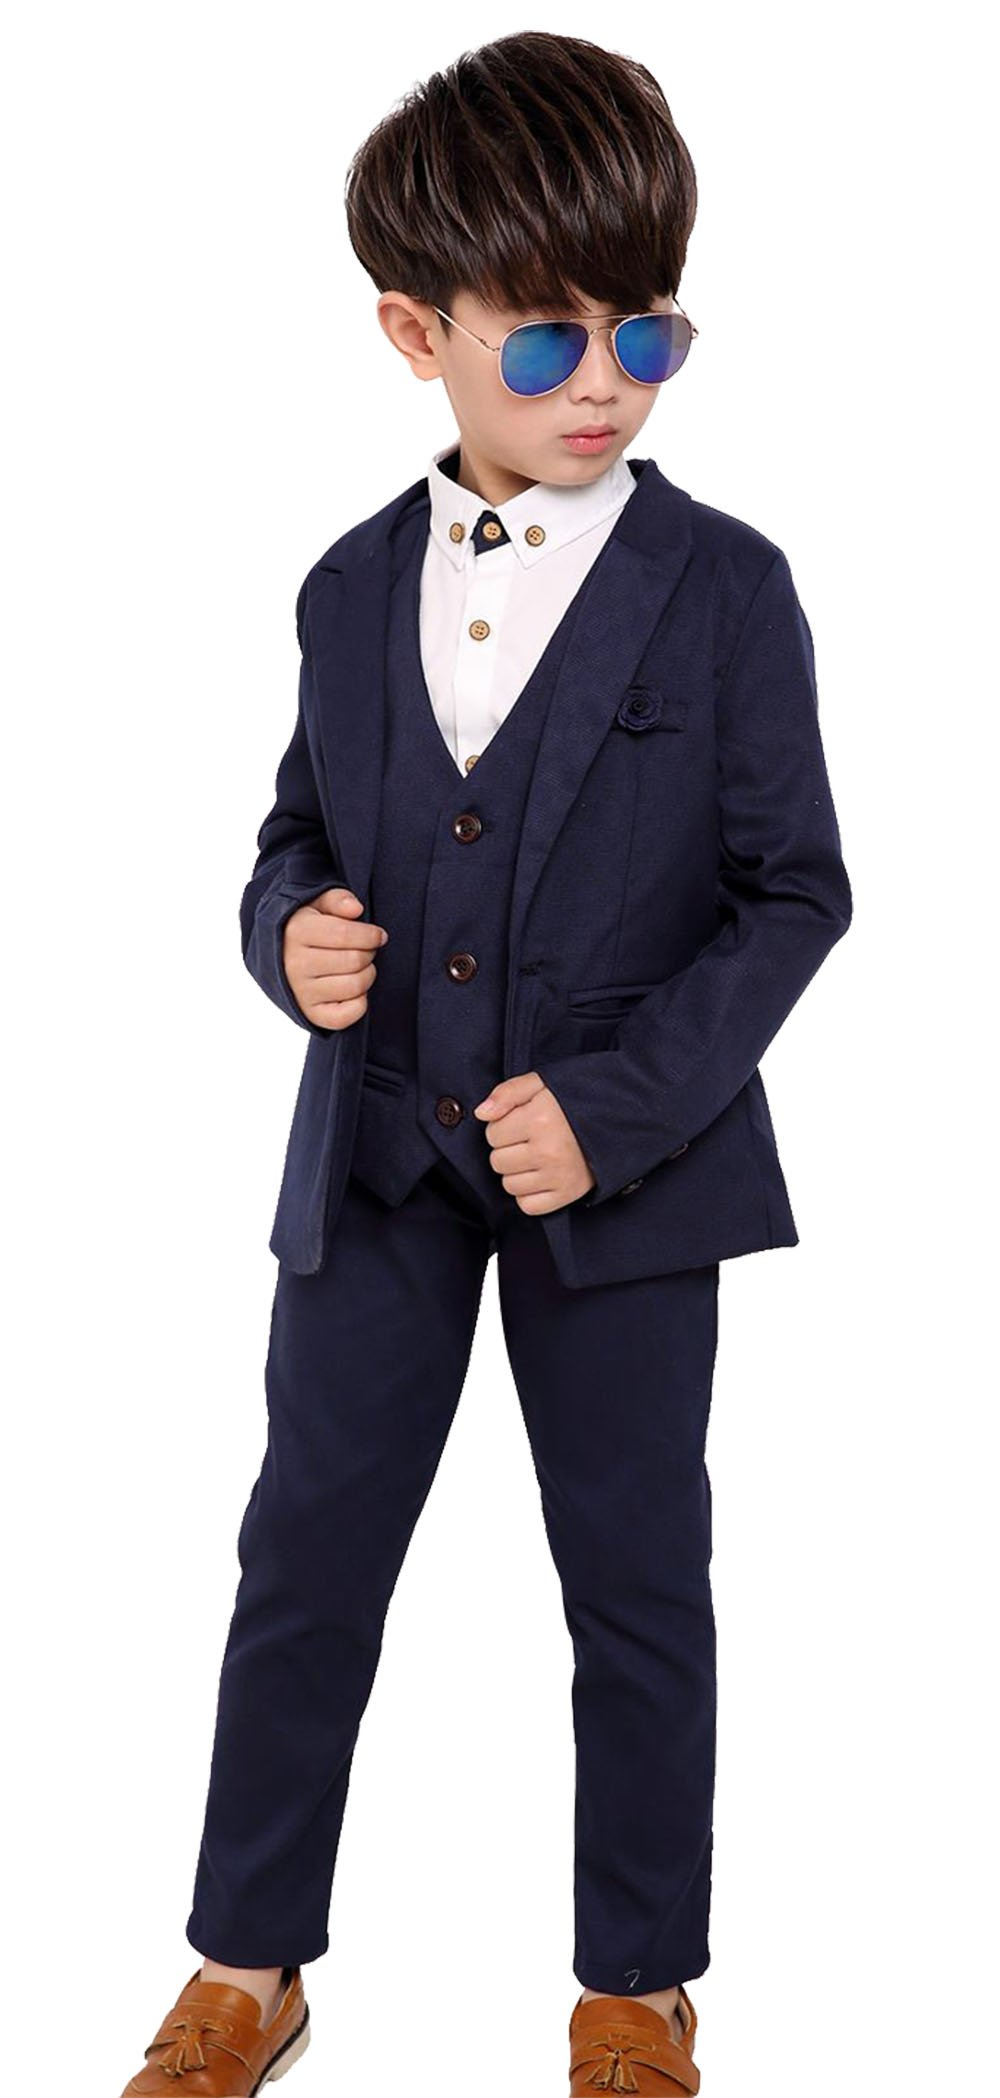 Fengchengjize Boys Suit Set 3 Pcs Kids Tuxedo Suits For Wedding Solid Suit Jacket Vest Loose Pants Navy Blue 4T